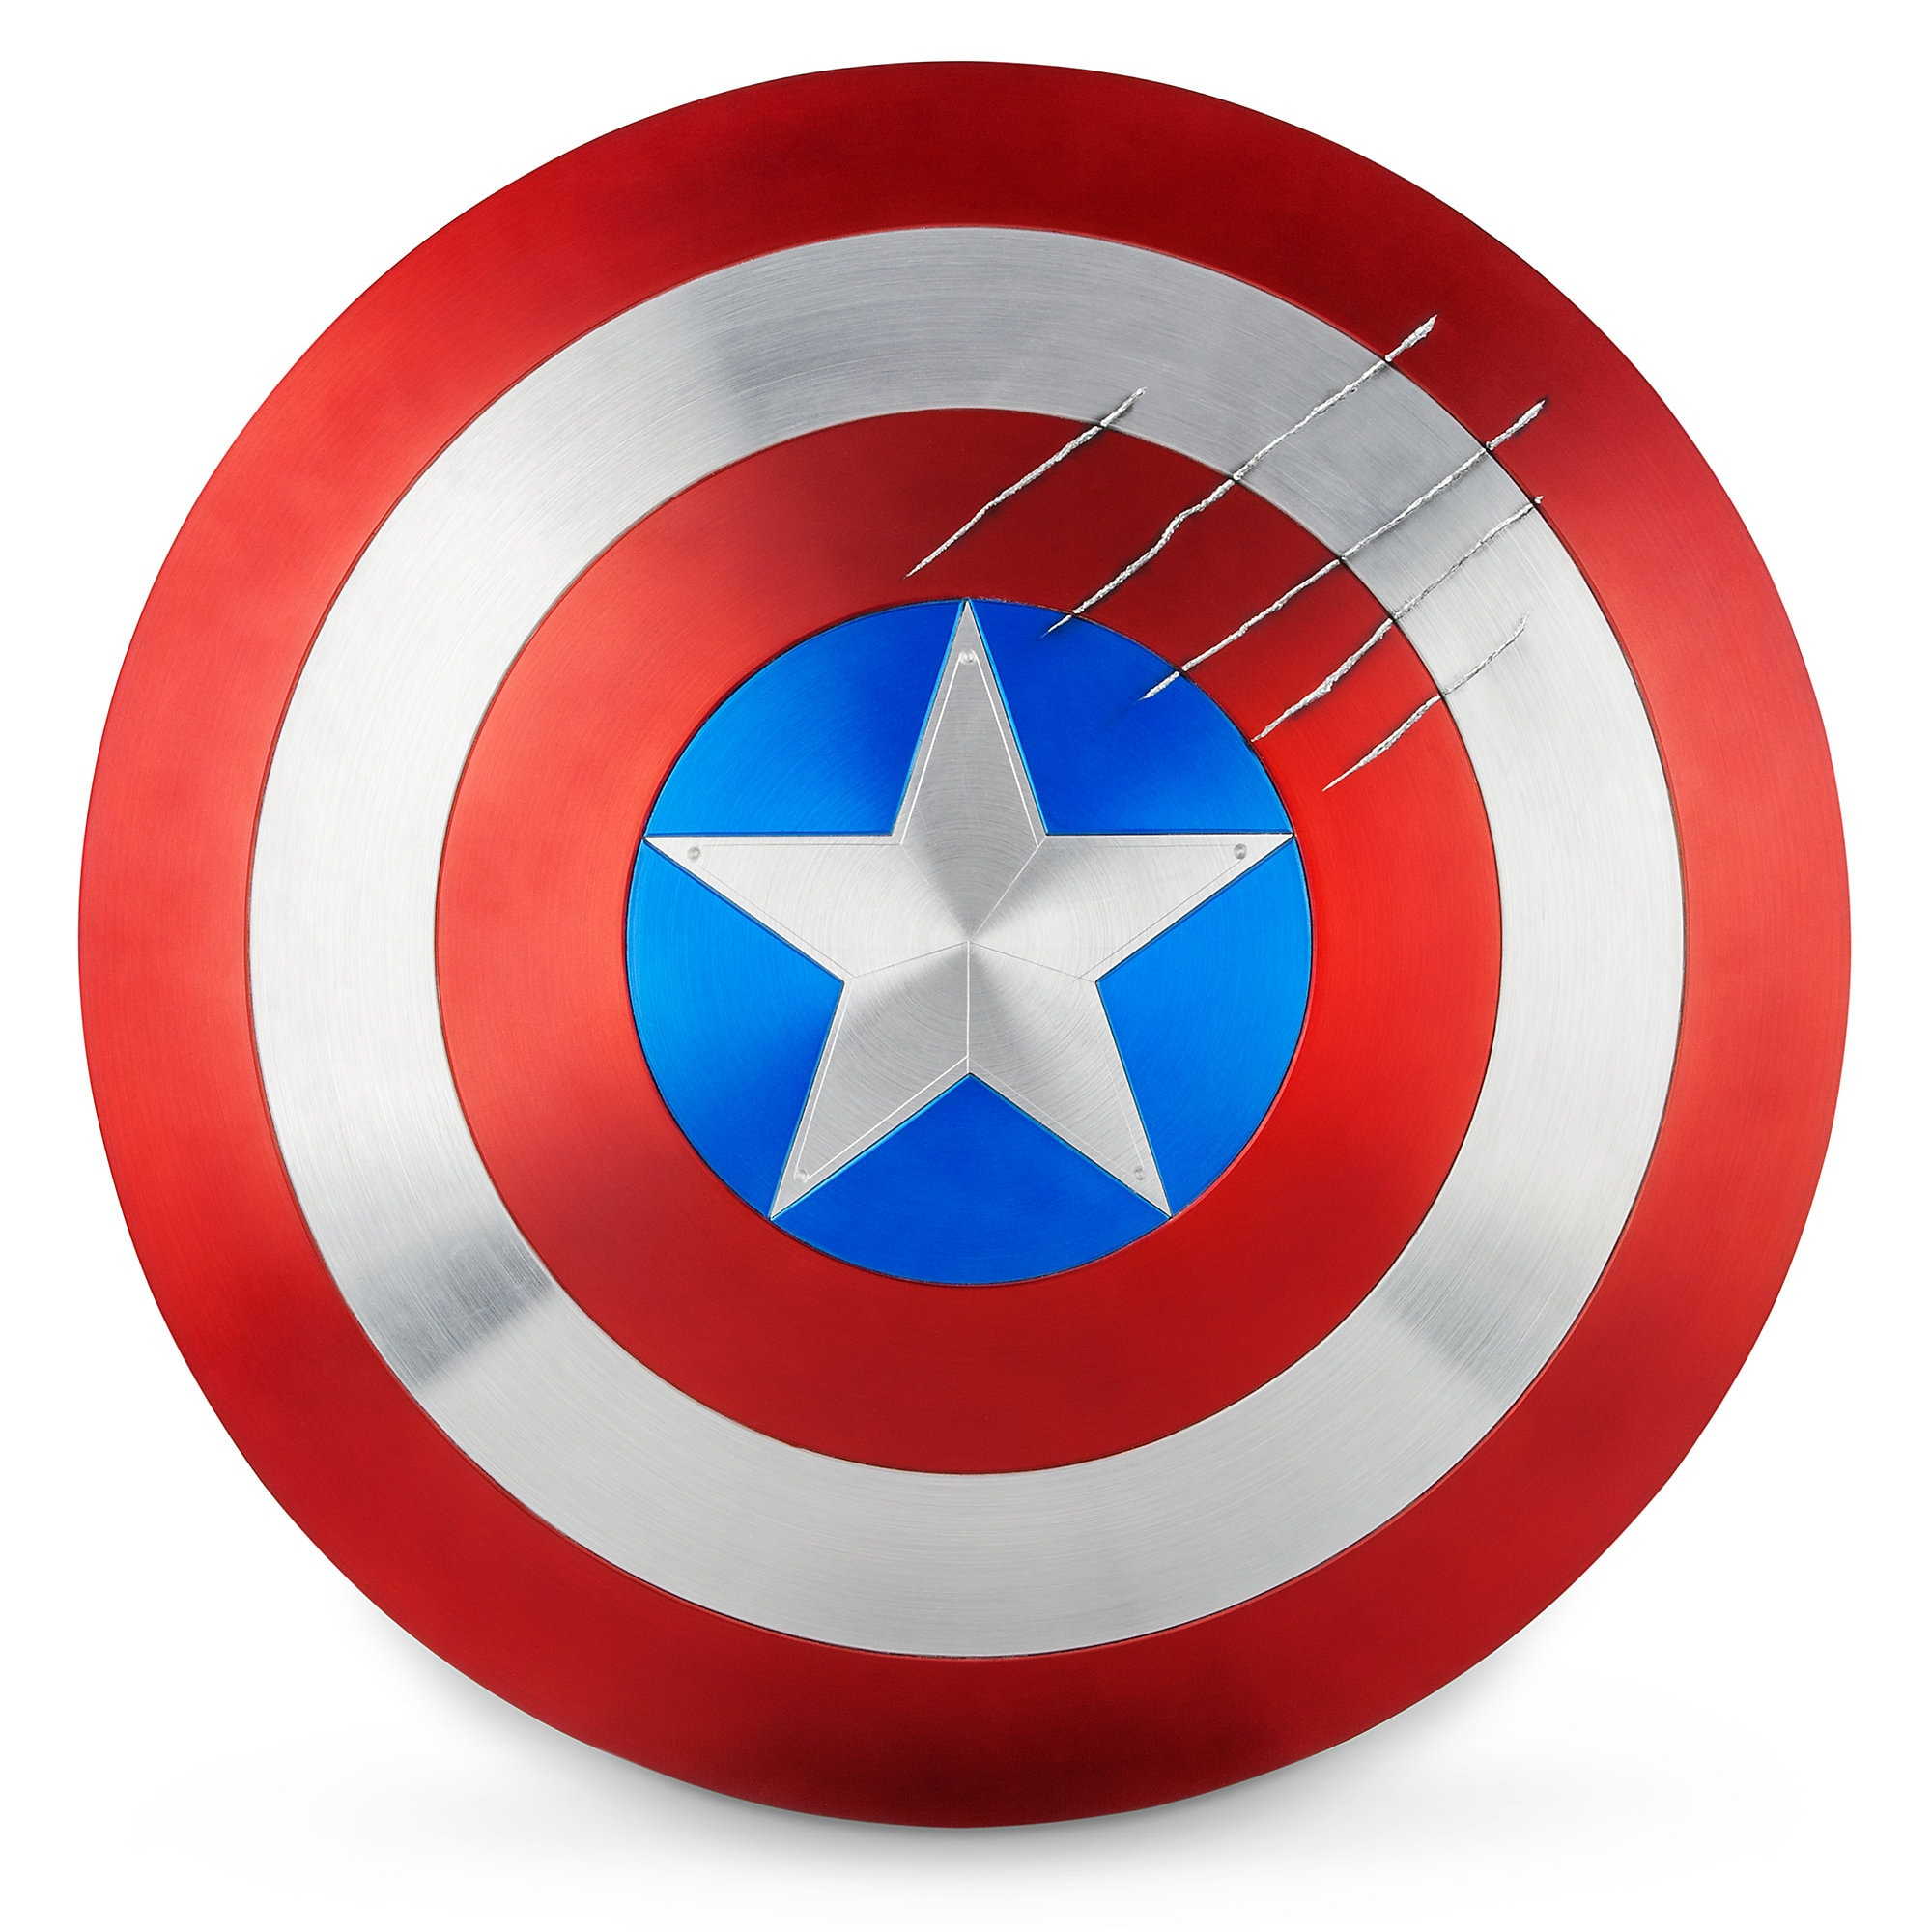 Captain America Shield with Black Panther Claw Marks - Marvel Masterworks  Collection Authentic Film Prop Duplicate - Limited Ed.  e6b018318855